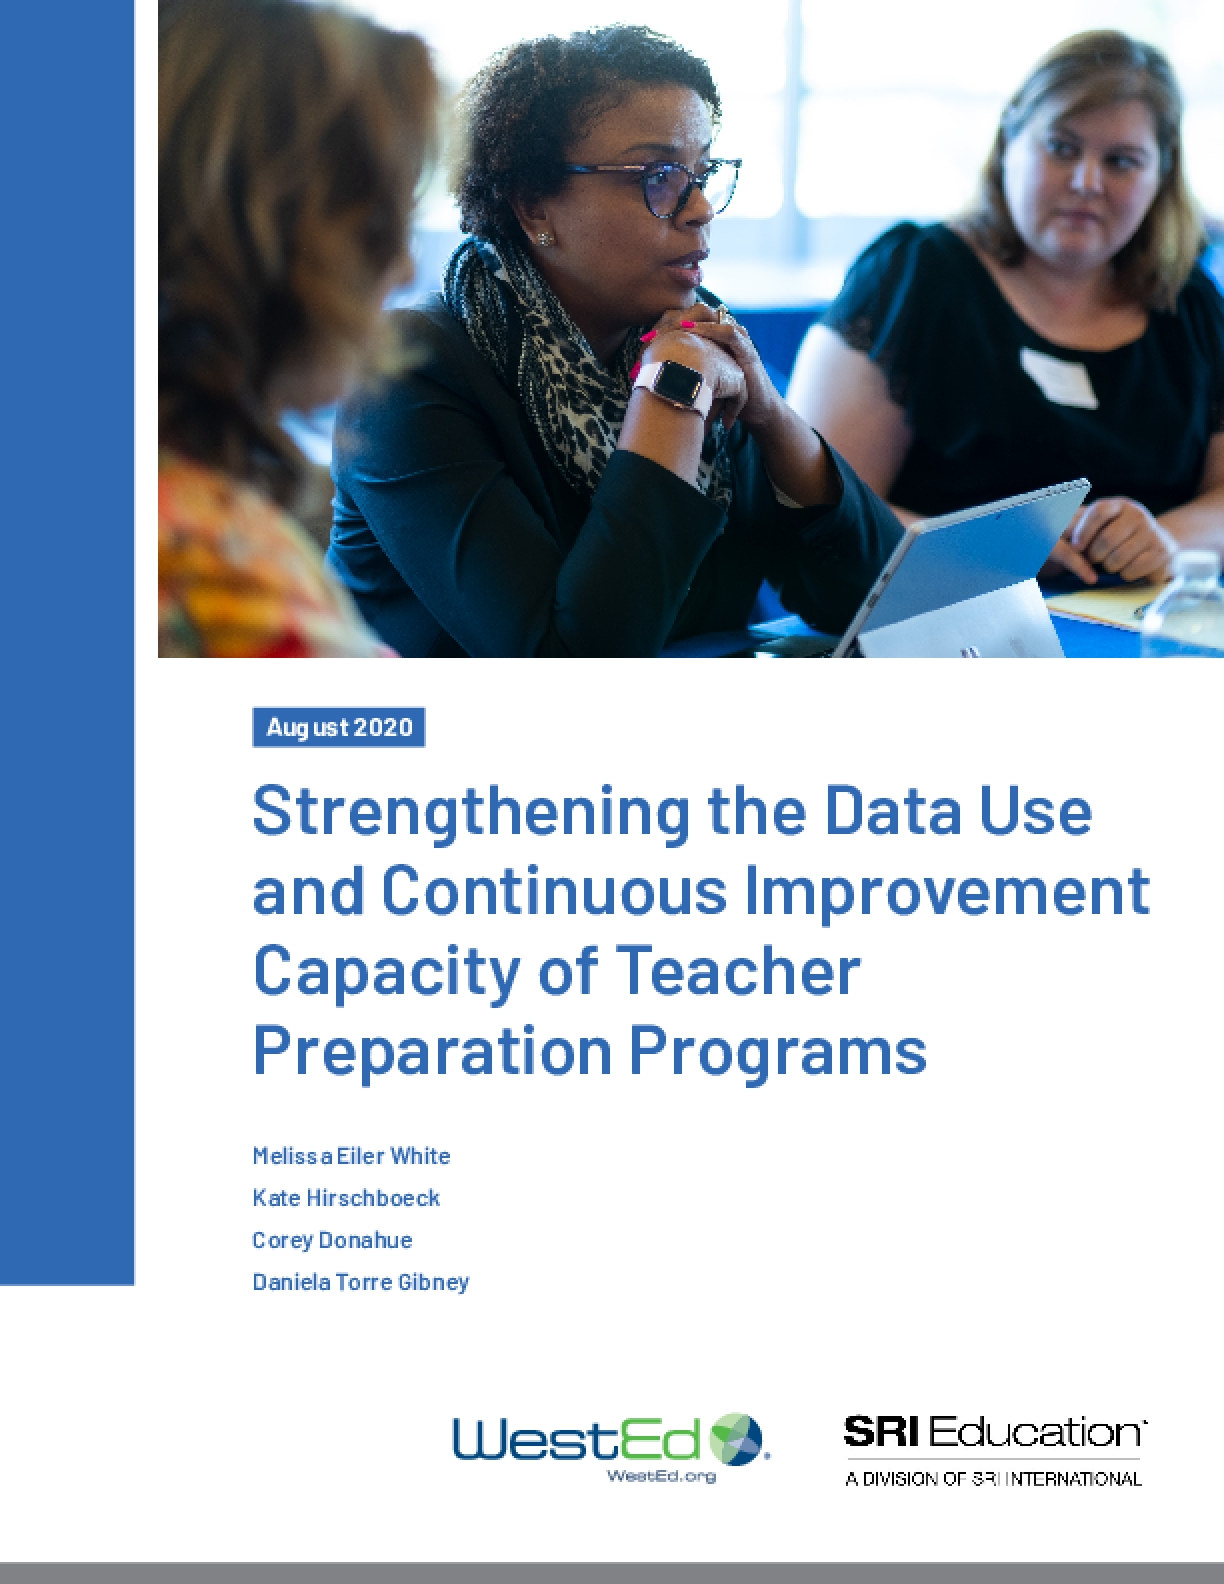 Strengthening the Data Use and Continuous Improvement Capacity of Teacher Preparation Programs